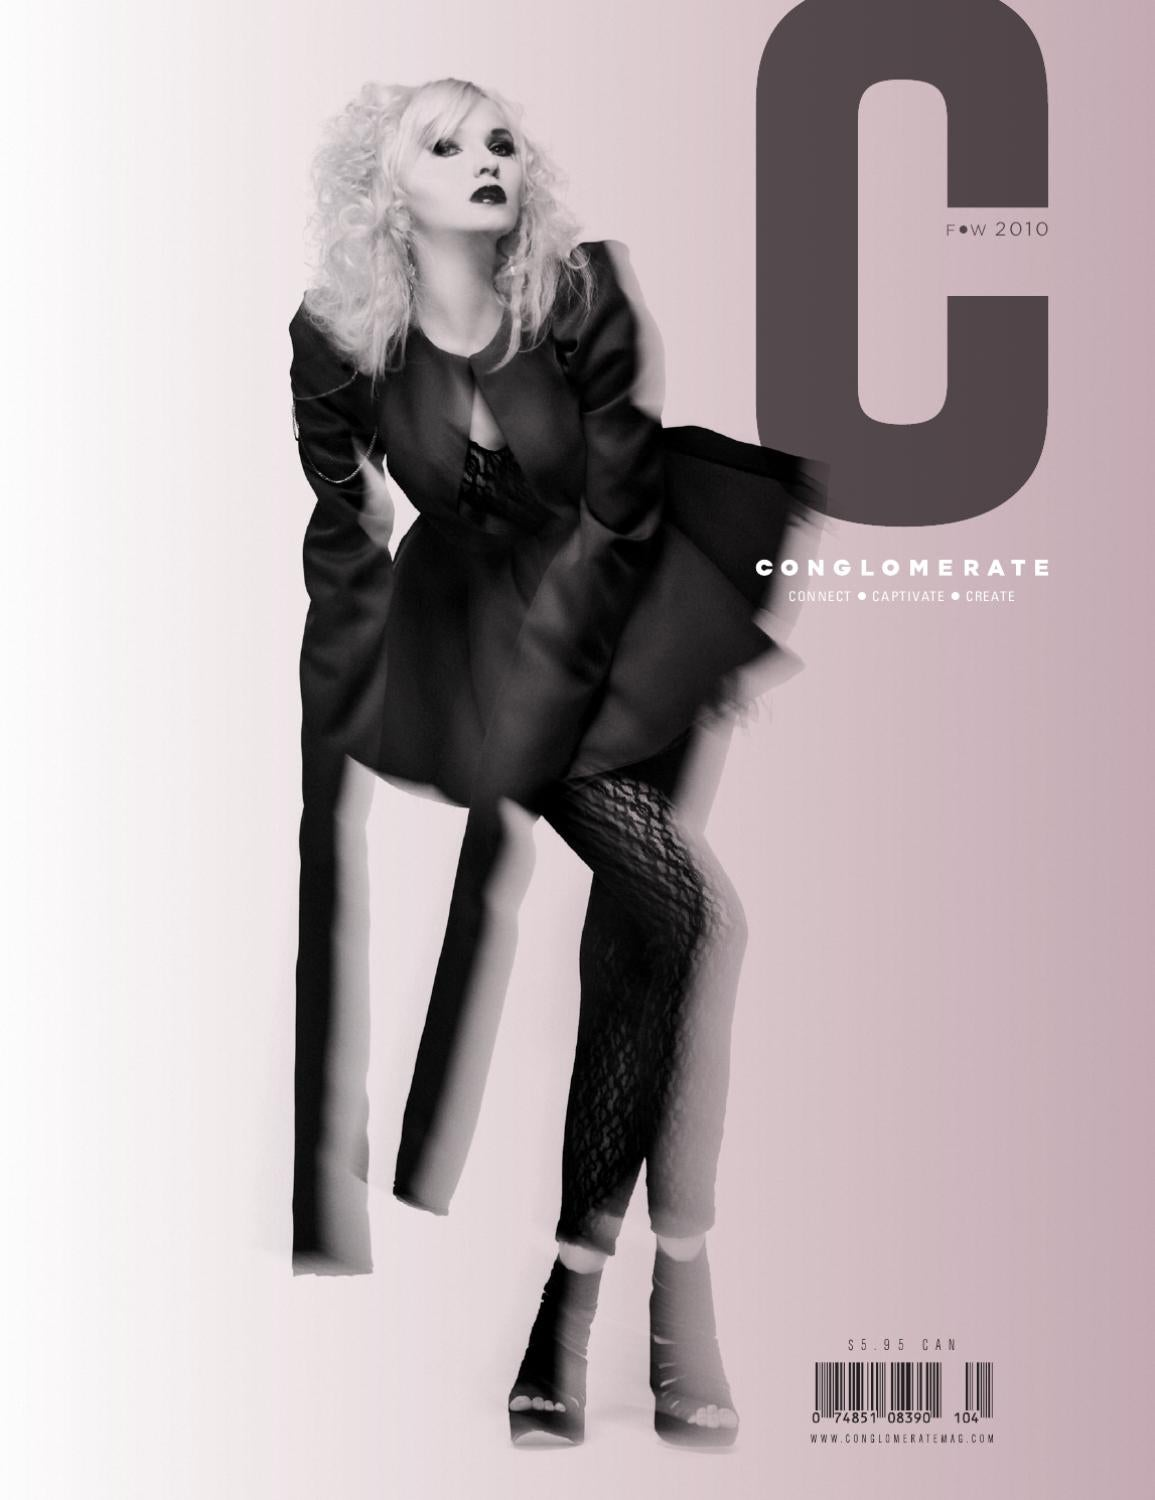 finly fortnight magazine Finn, is a coffee table magazine about feet, pantyhose and nylon.